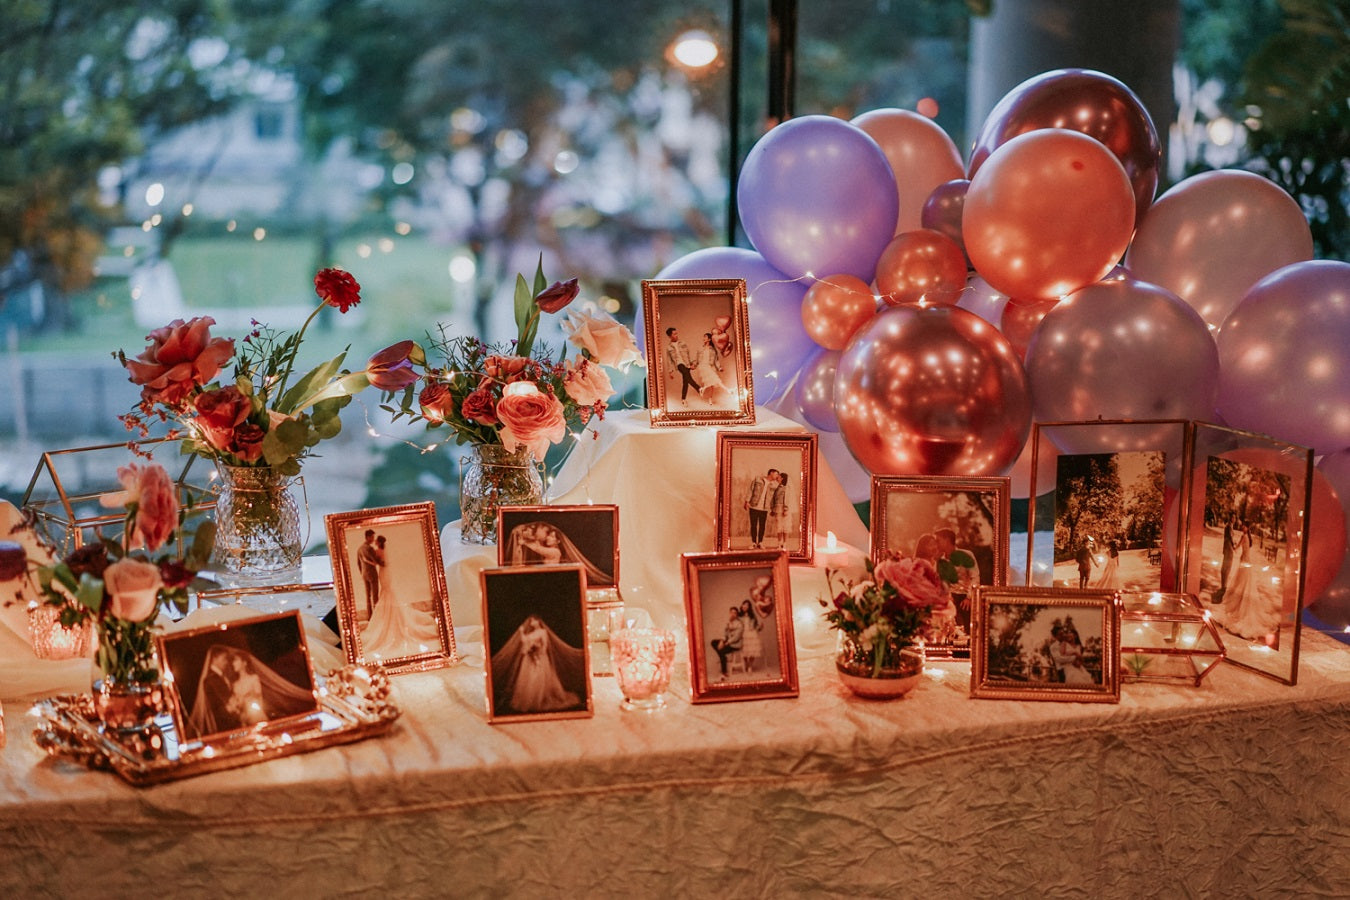 Pinterest worthy photo table styling at wedding reception with creative pre wedding photography and themed classy balloons